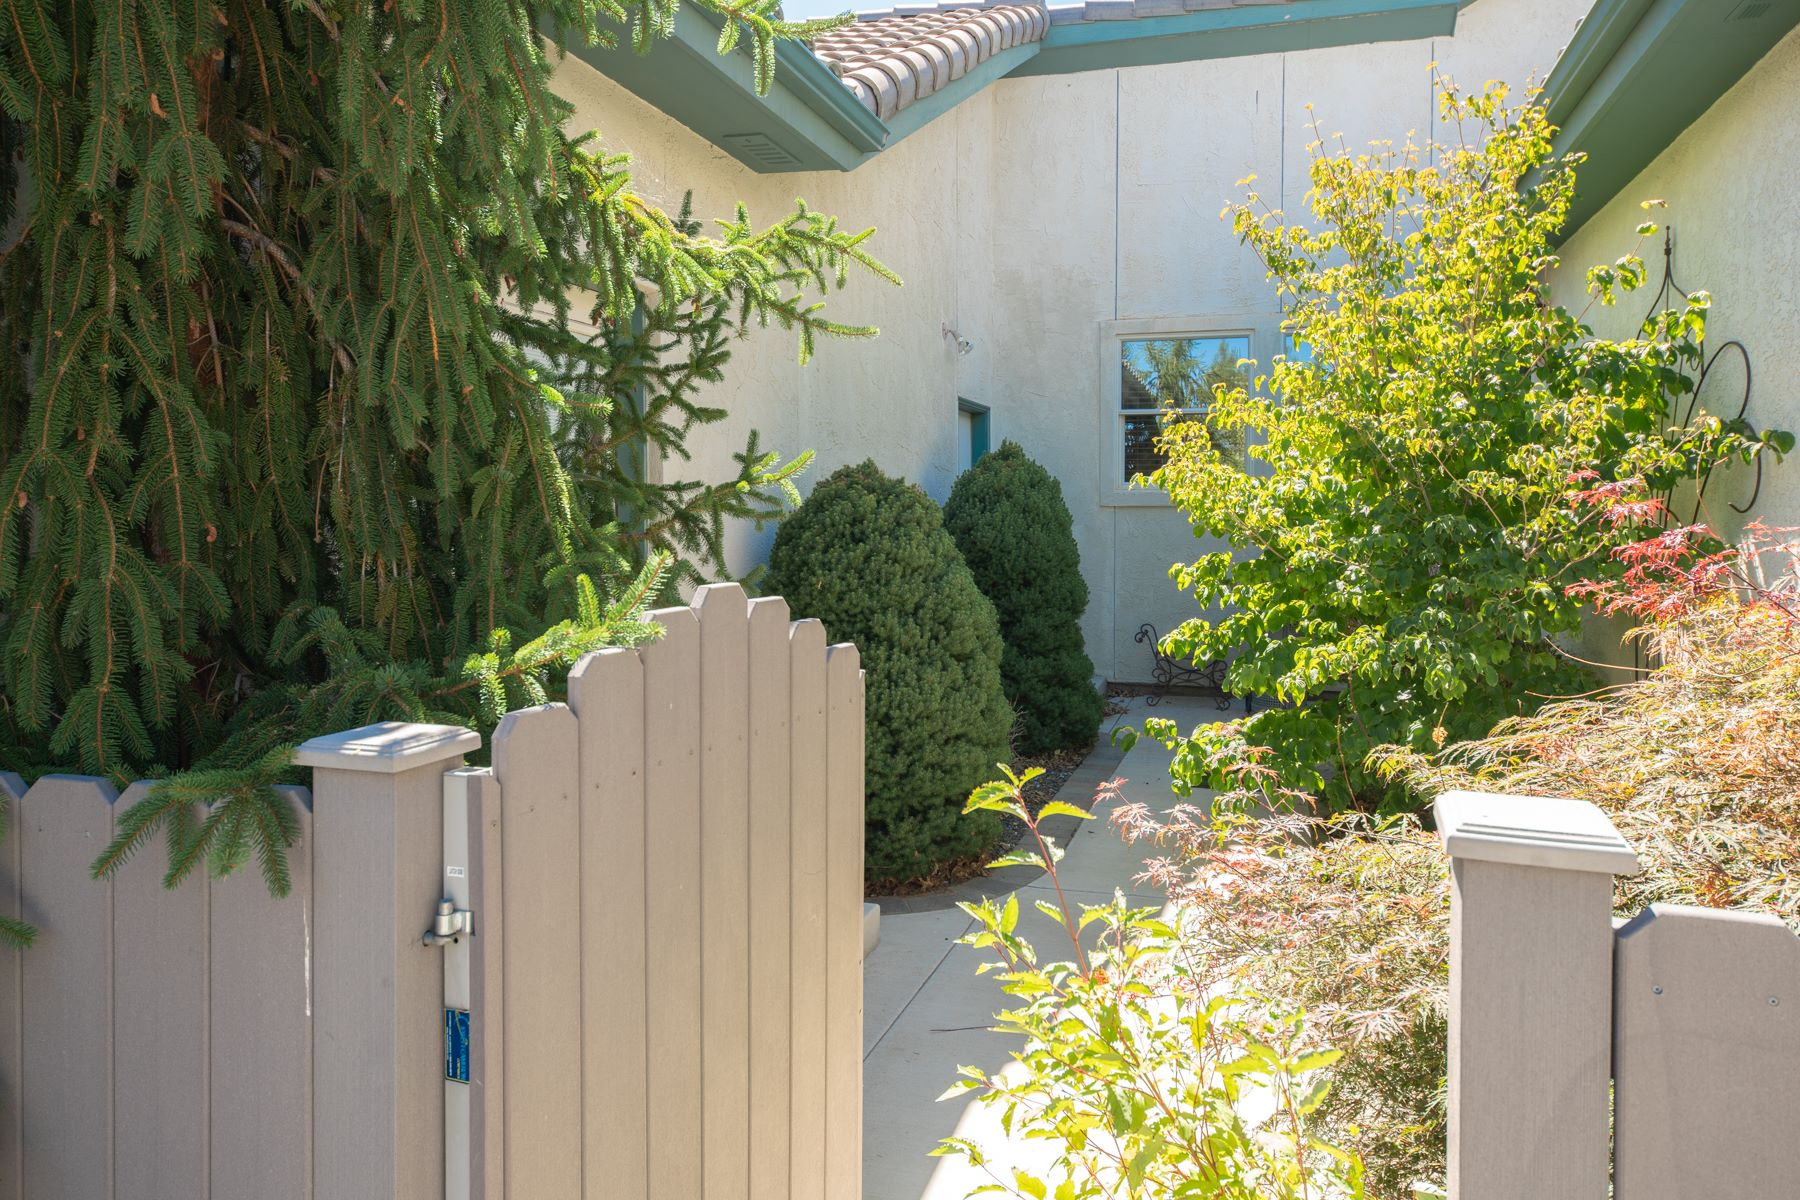 Additional photo for property listing at 1489 Wild Iris Court,  Gardnerville, NV 89410 1489 Wild Iris Court 加登维尔, 内华达州 89410 美国